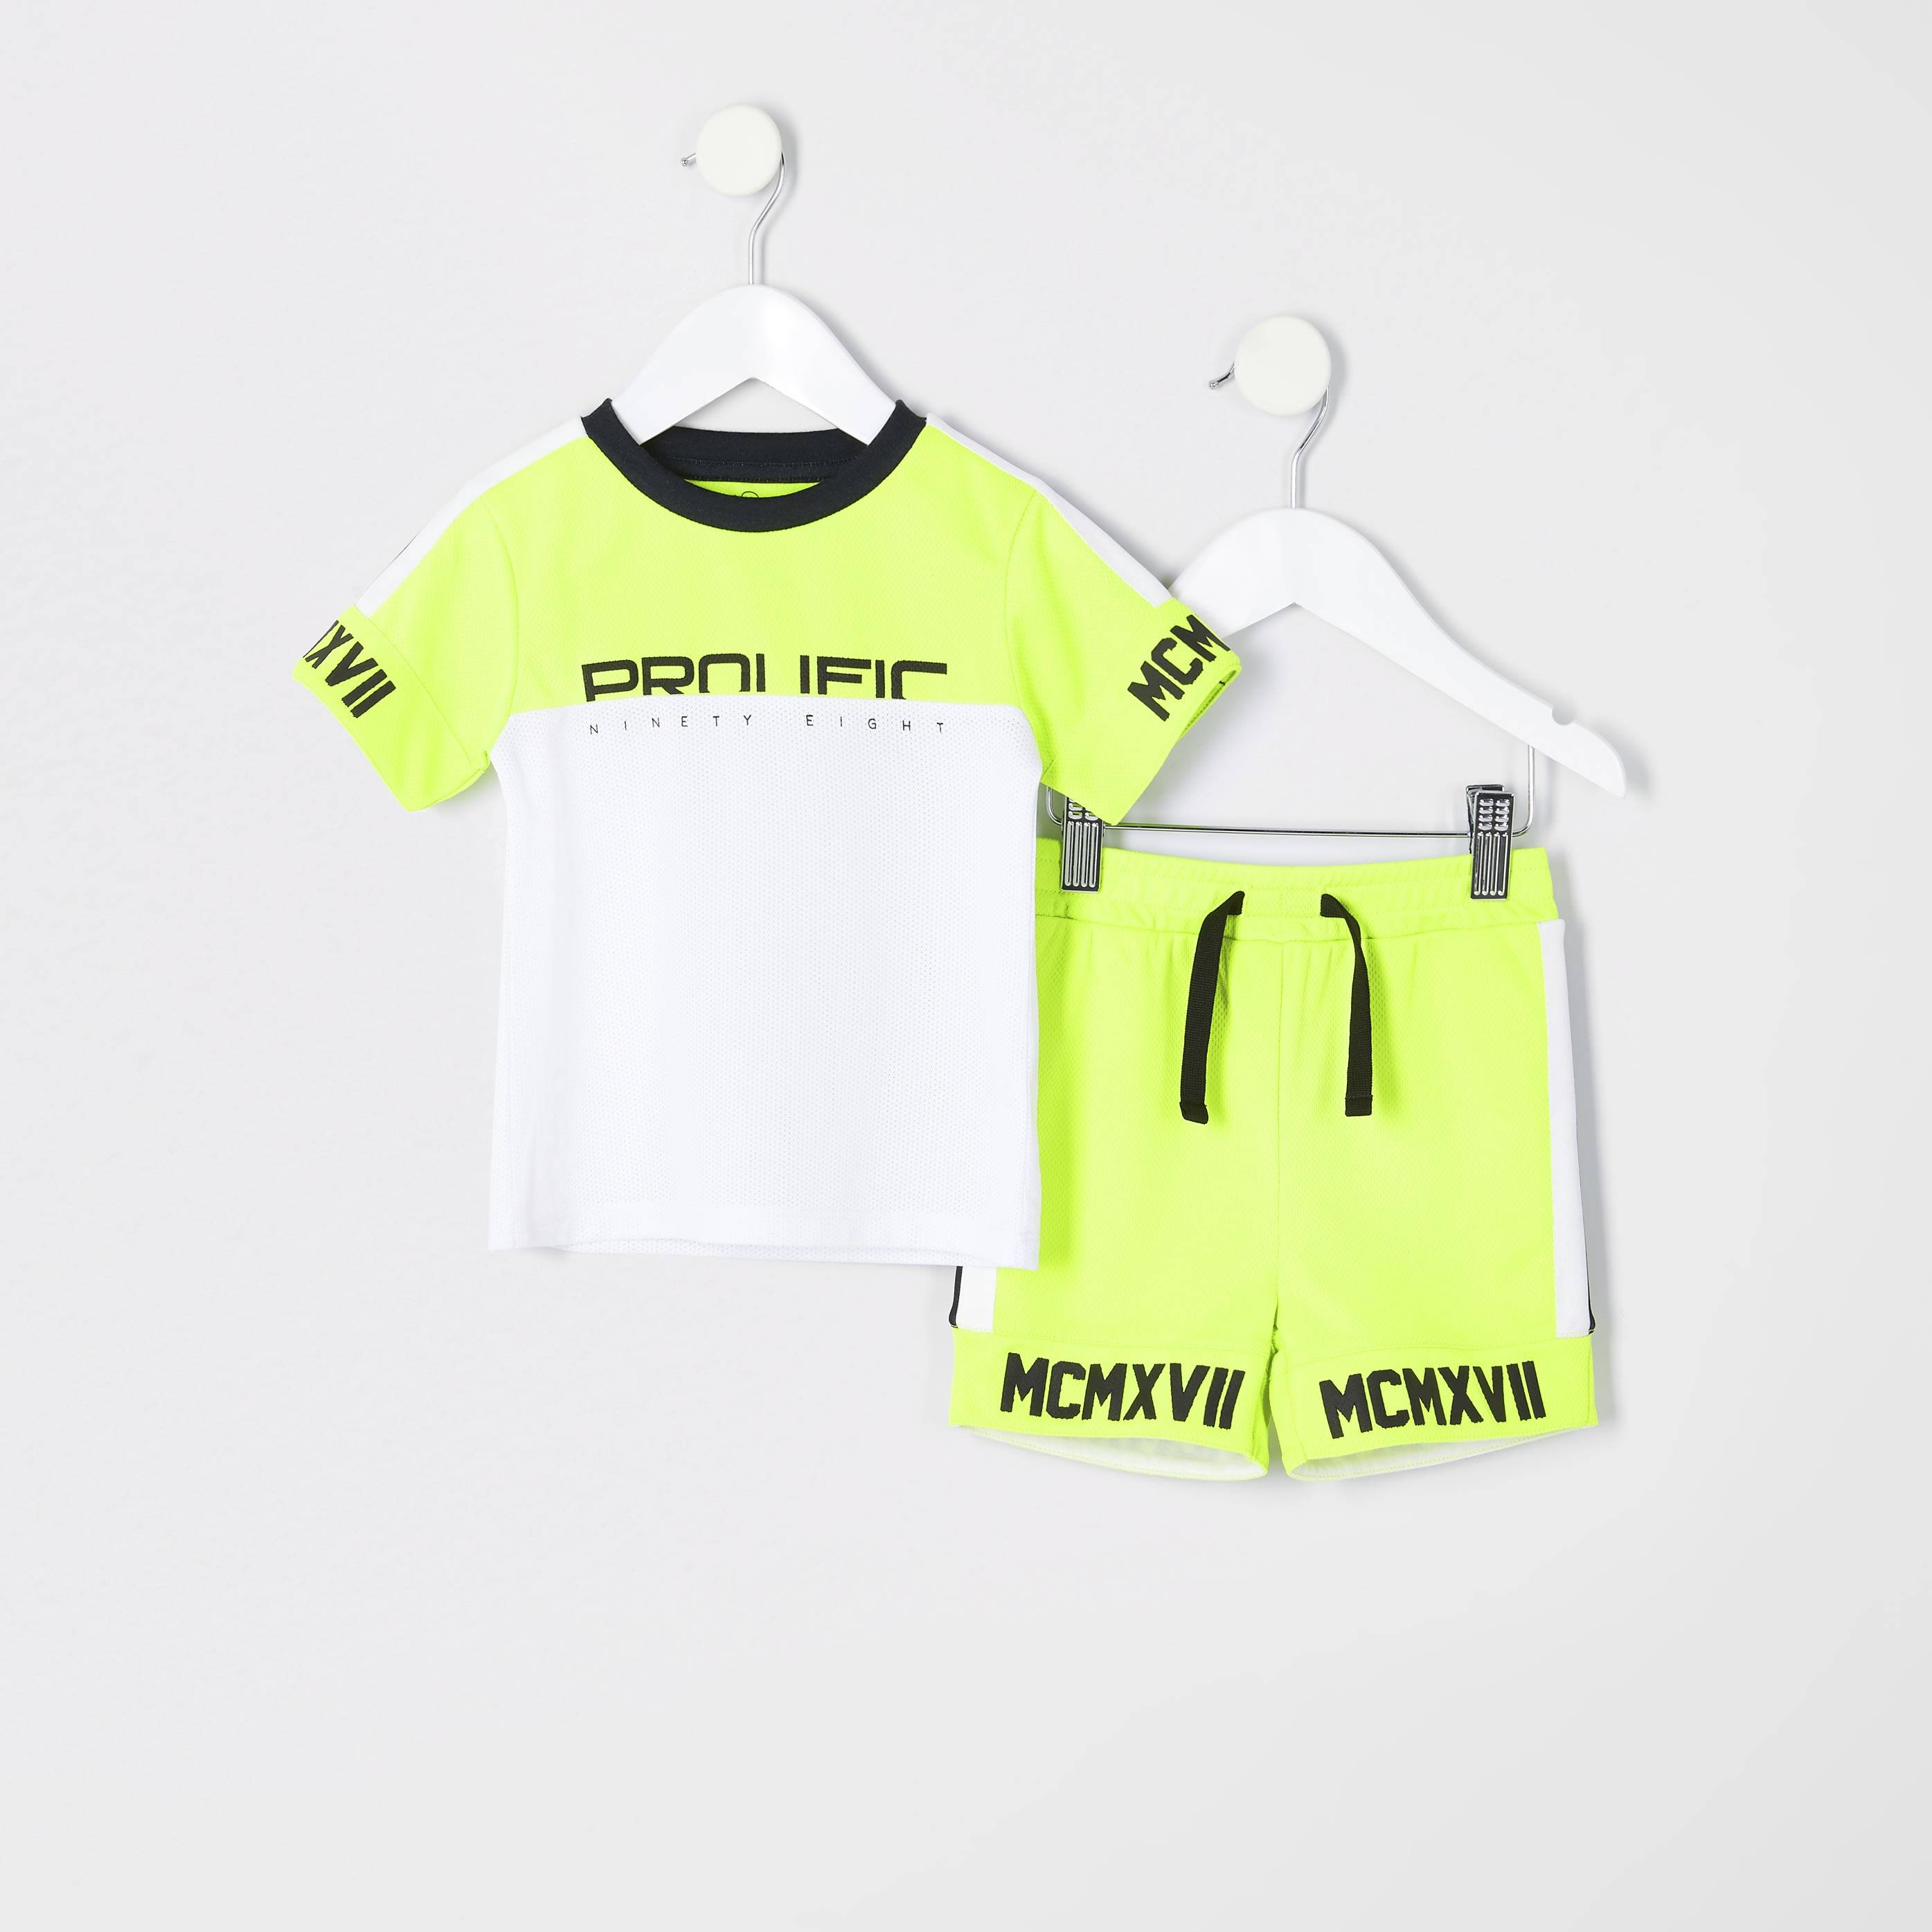 River Island Mens Baby Boys Green 'Prolific' T-shirt outfit (3-6 Mths)